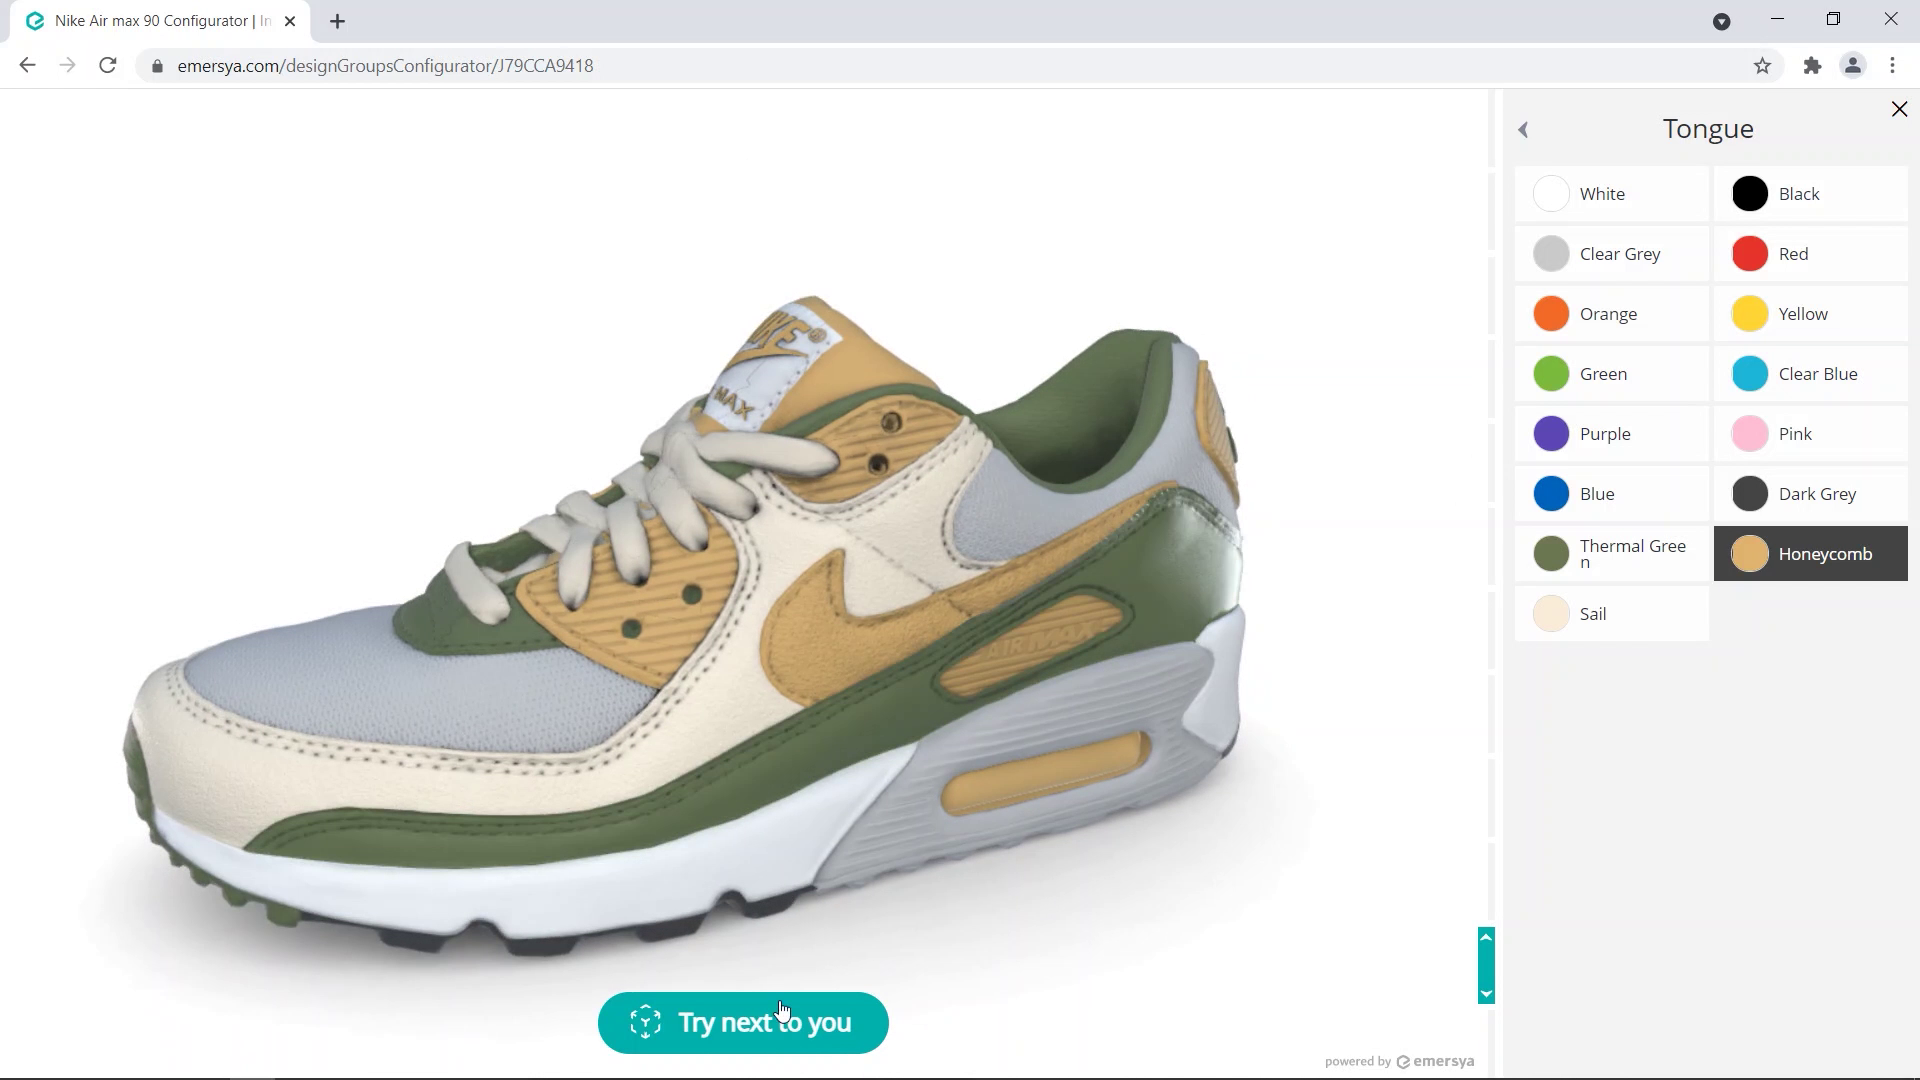 Preview image of Photo-realistic 3D models for online product customization